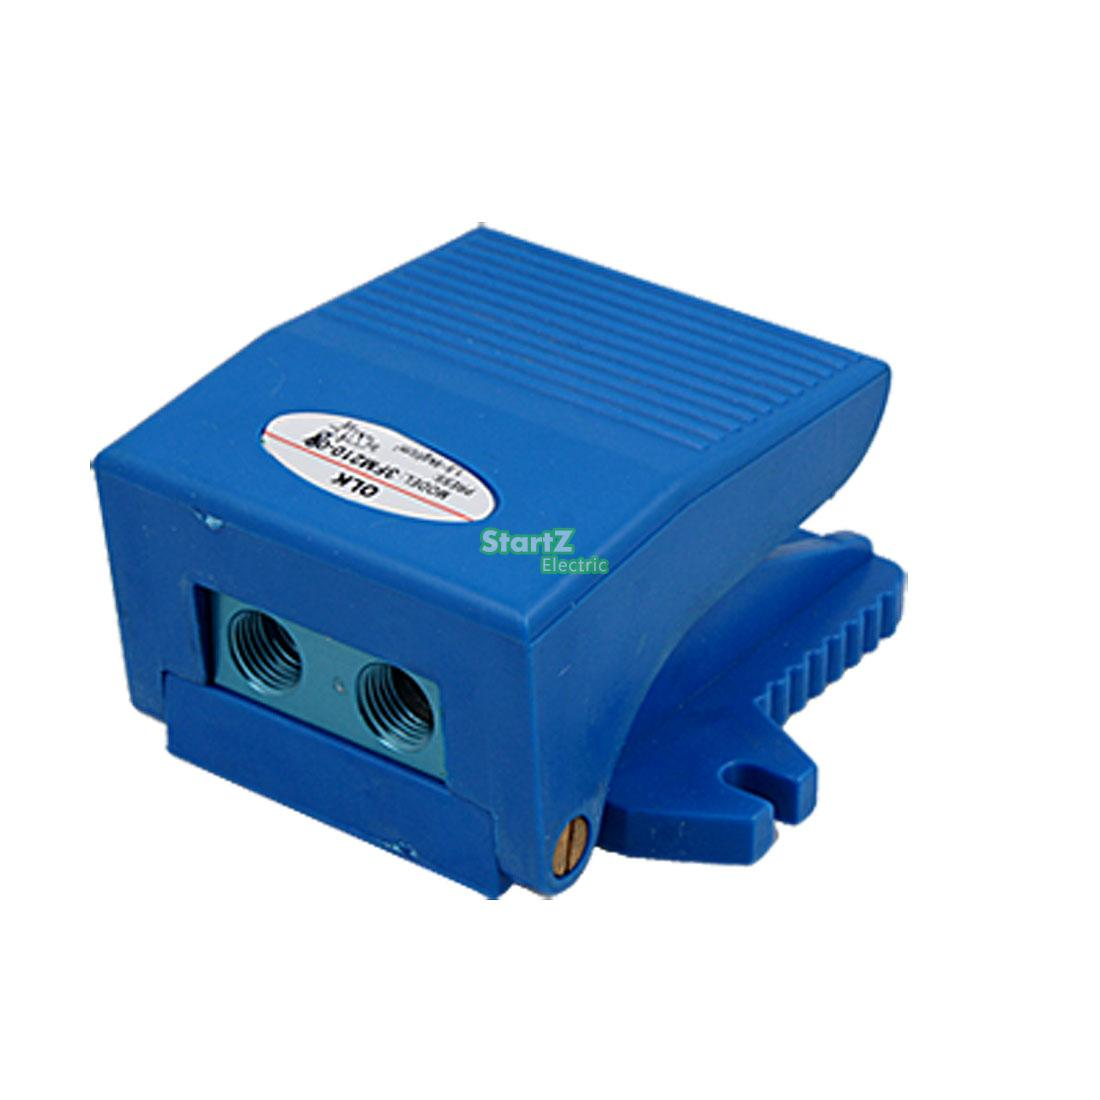 2 Way 2 Position Foot Operate Pneumatic Pedal Valve Blue 3FM210-082 Way 2 Position Foot Operate Pneumatic Pedal Valve Blue 3FM210-08